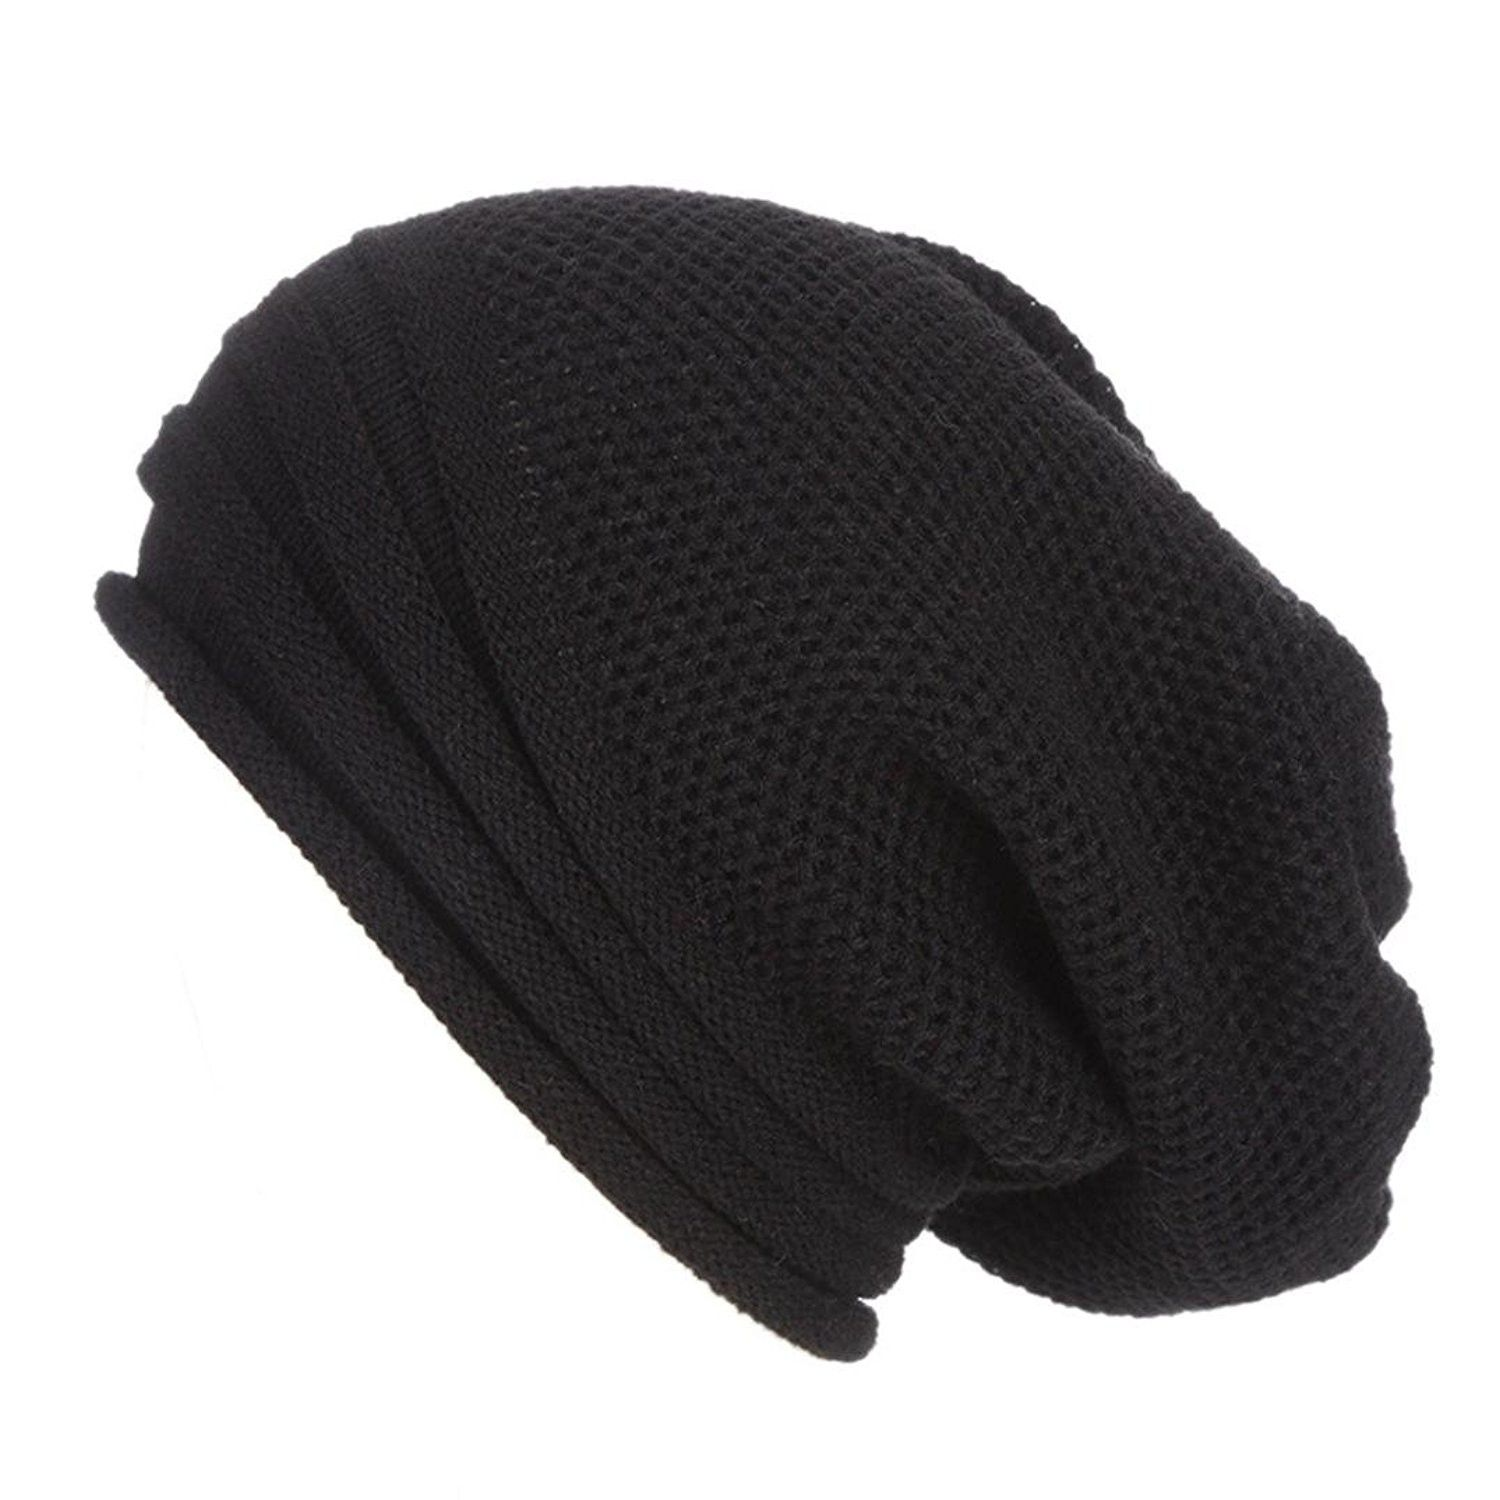 d6848f6c022 Womens Hat Winter- Unisex Warm Chunky Stretch Cable Knit Slouchy Baggy Beanie  Hat Skull Cap